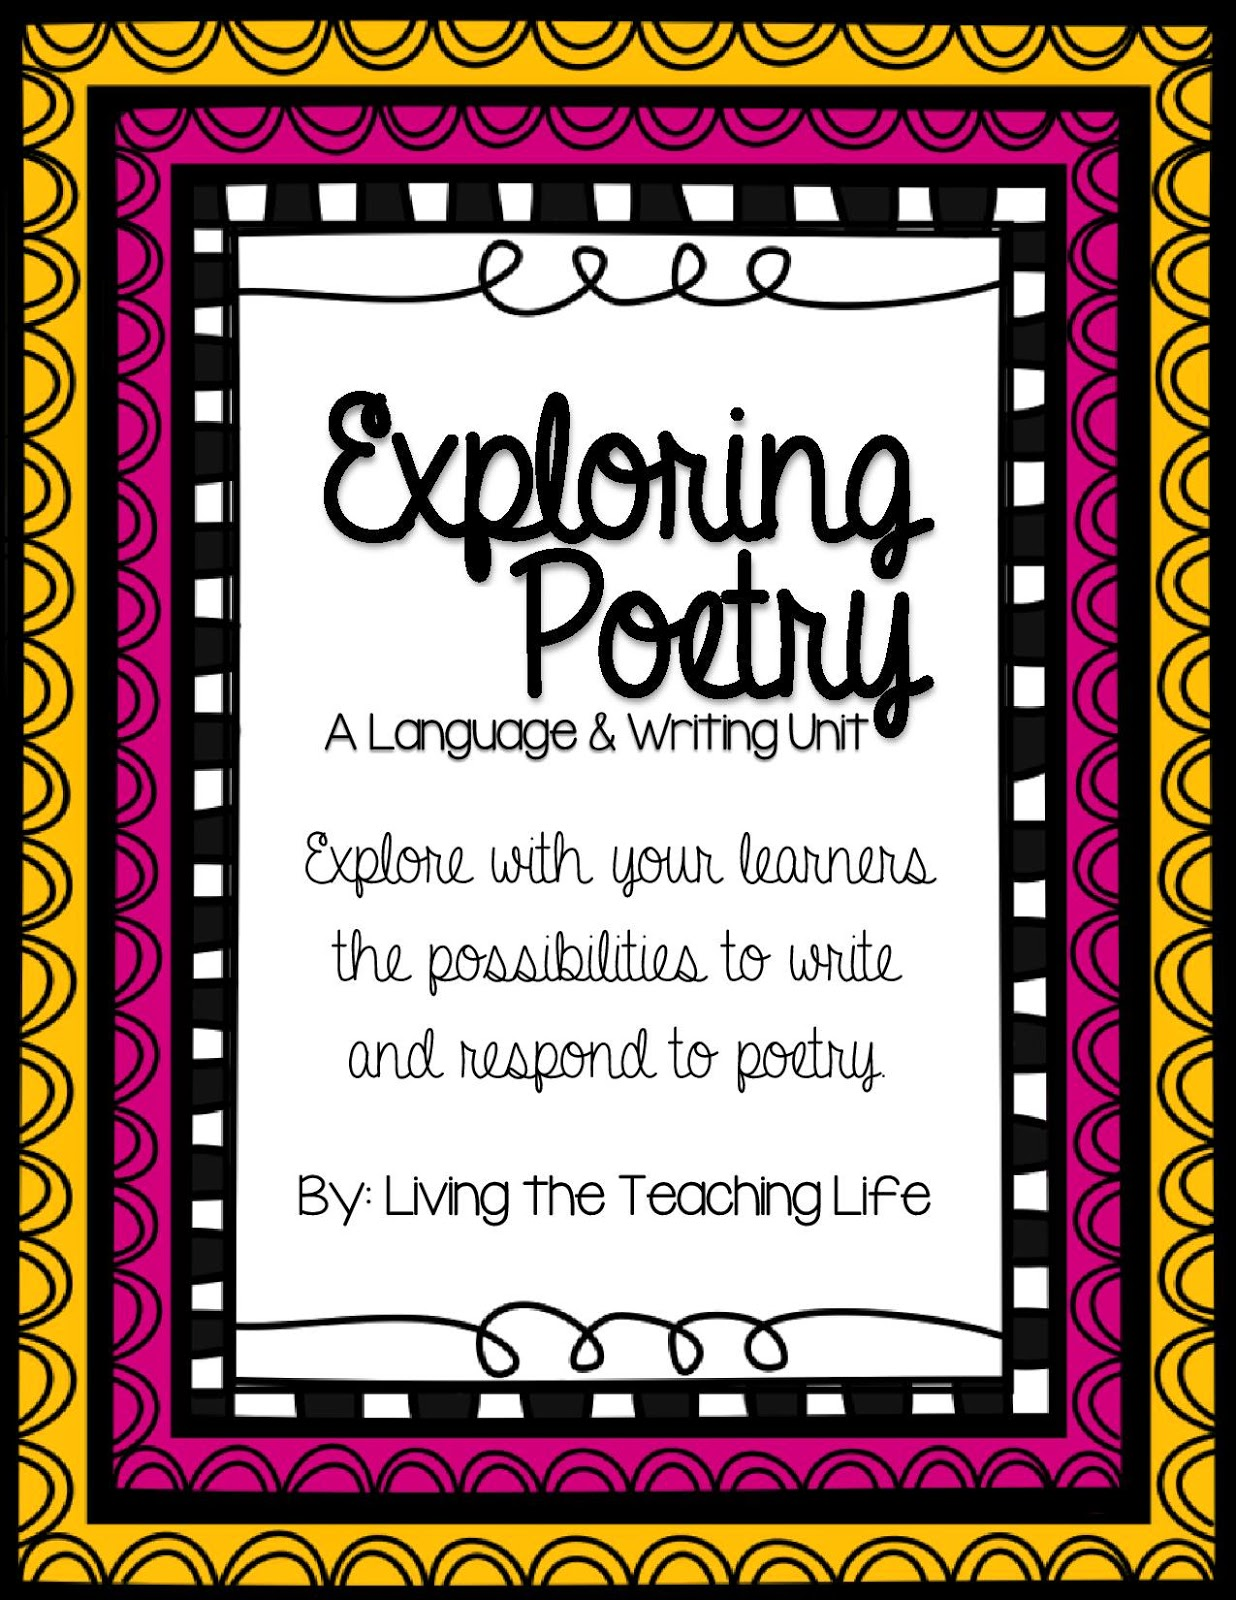 http://www.teacherspayteachers.com/Product/Exploring-Figurative-Language-Poetry-Unit-1269228